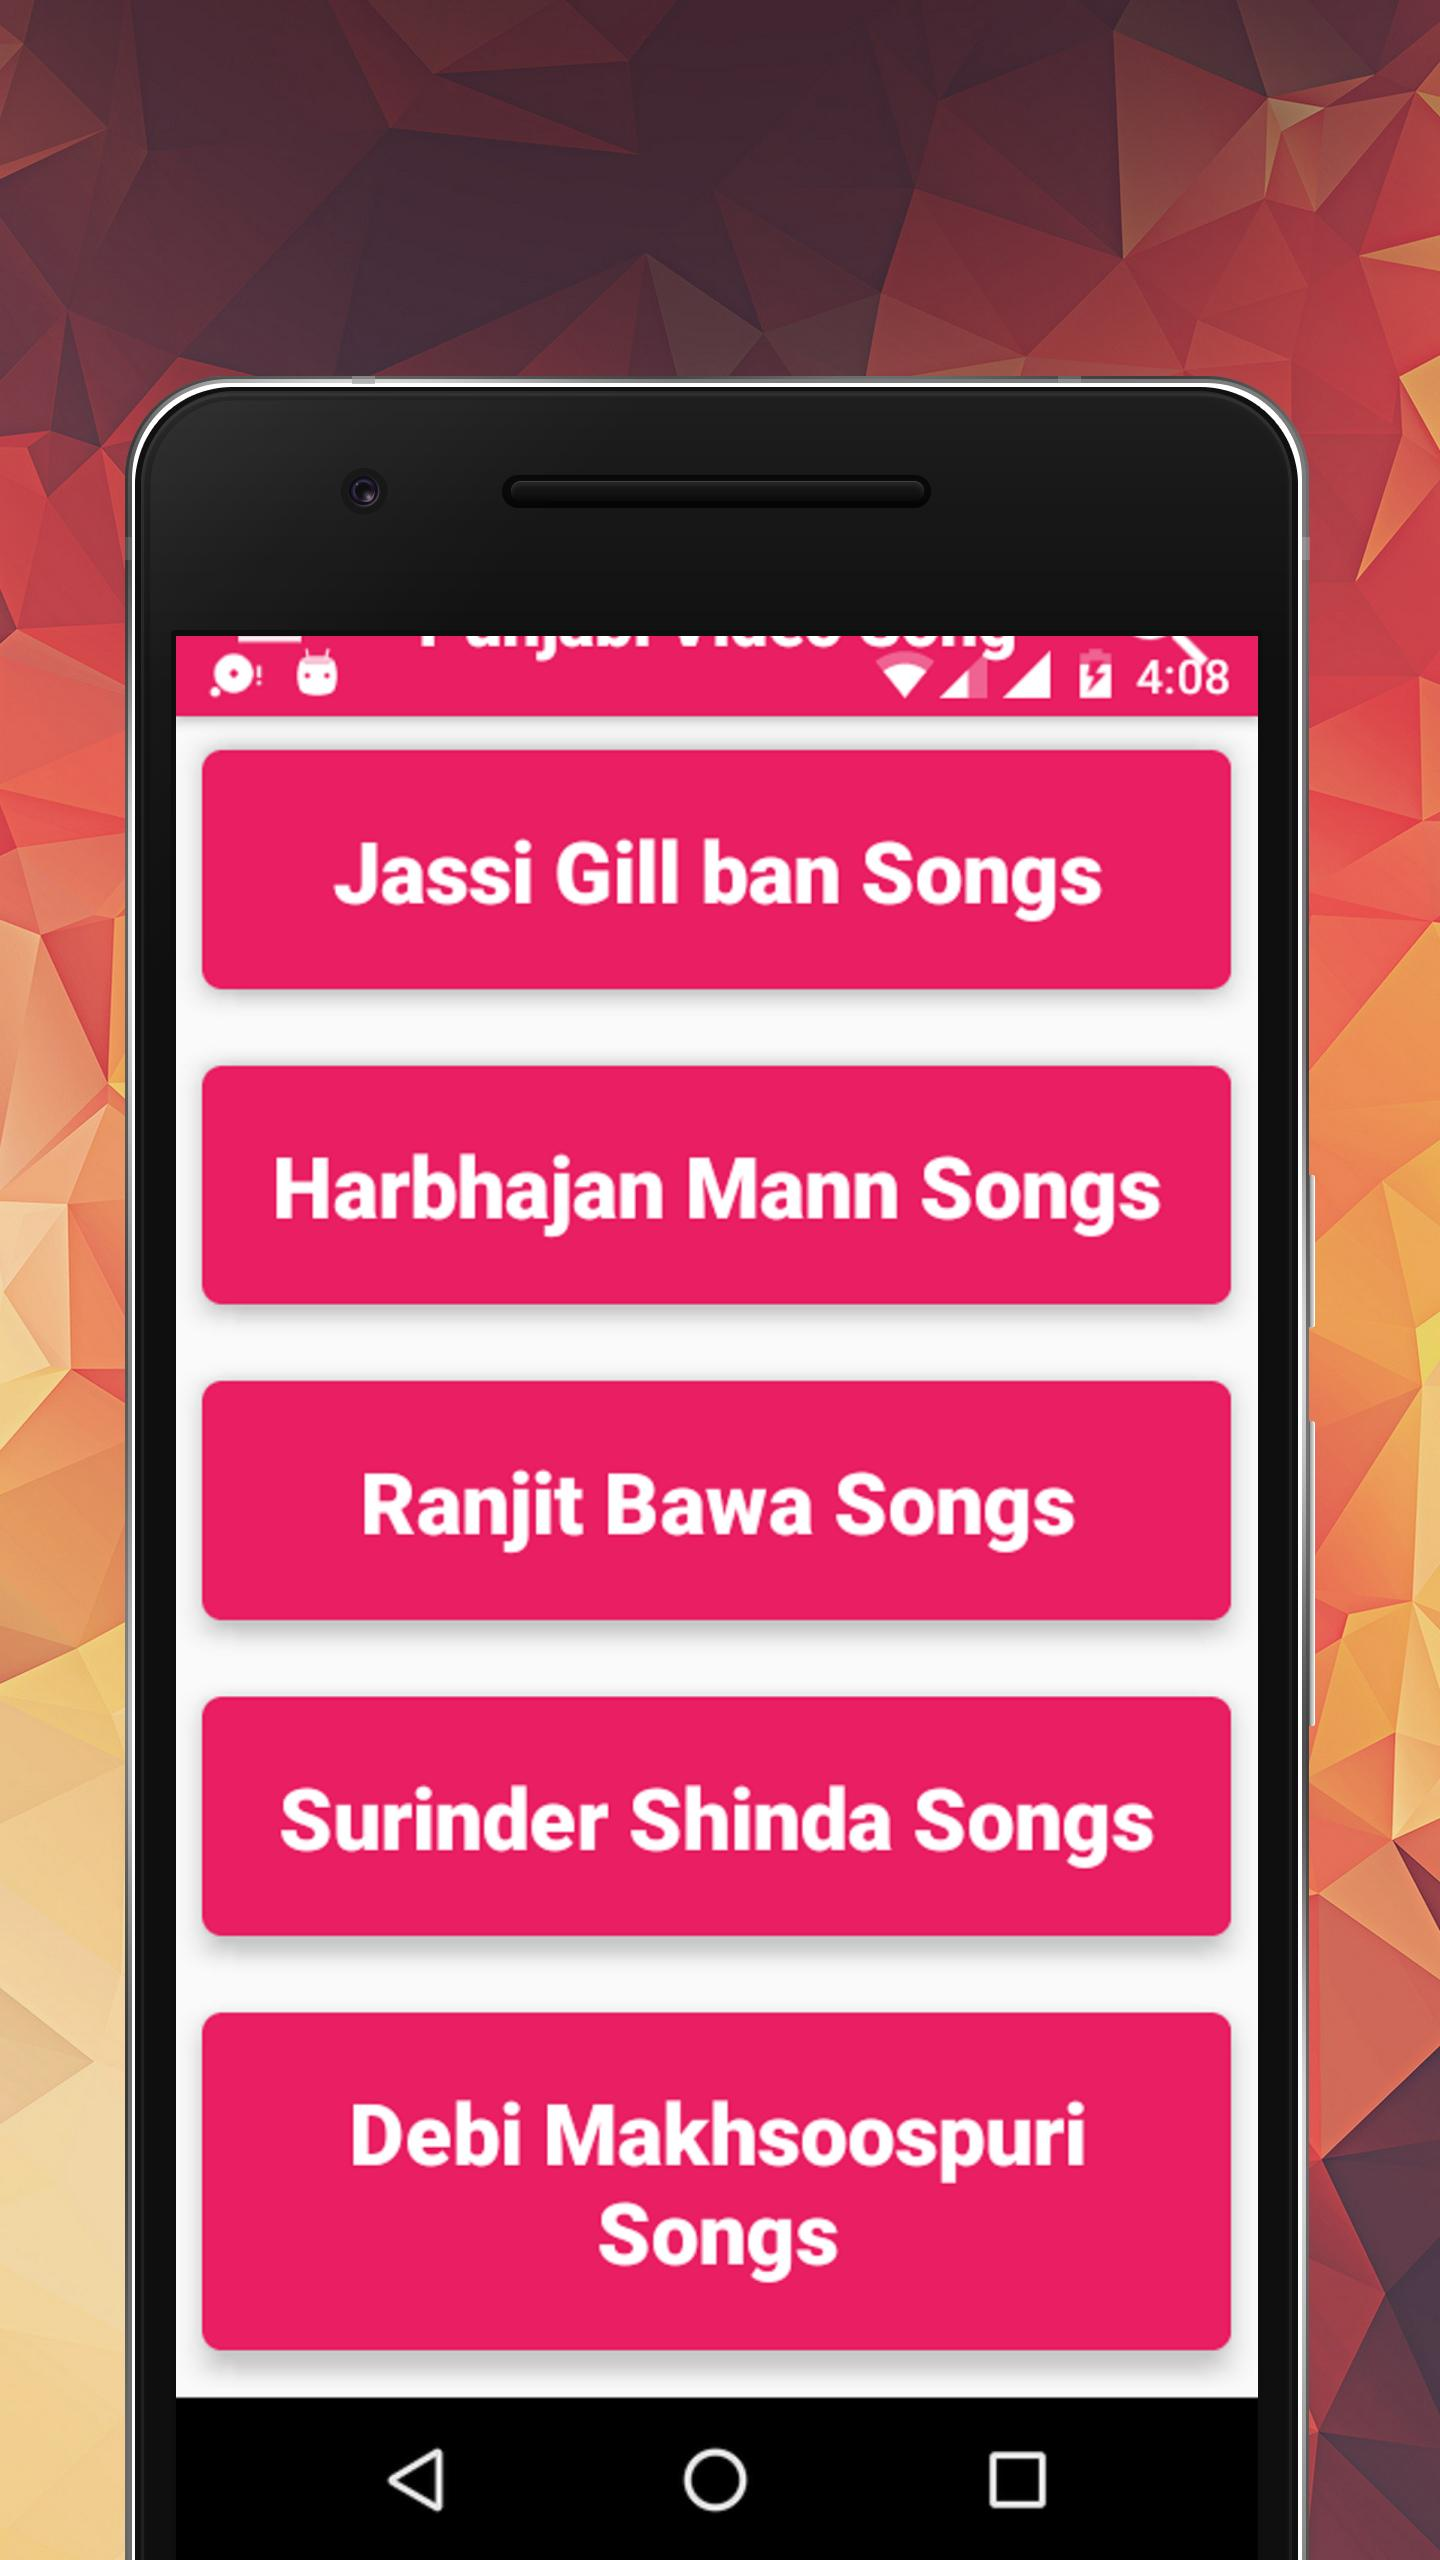 New Latest Punjabi Video Songs 2018 for Android - APK Download